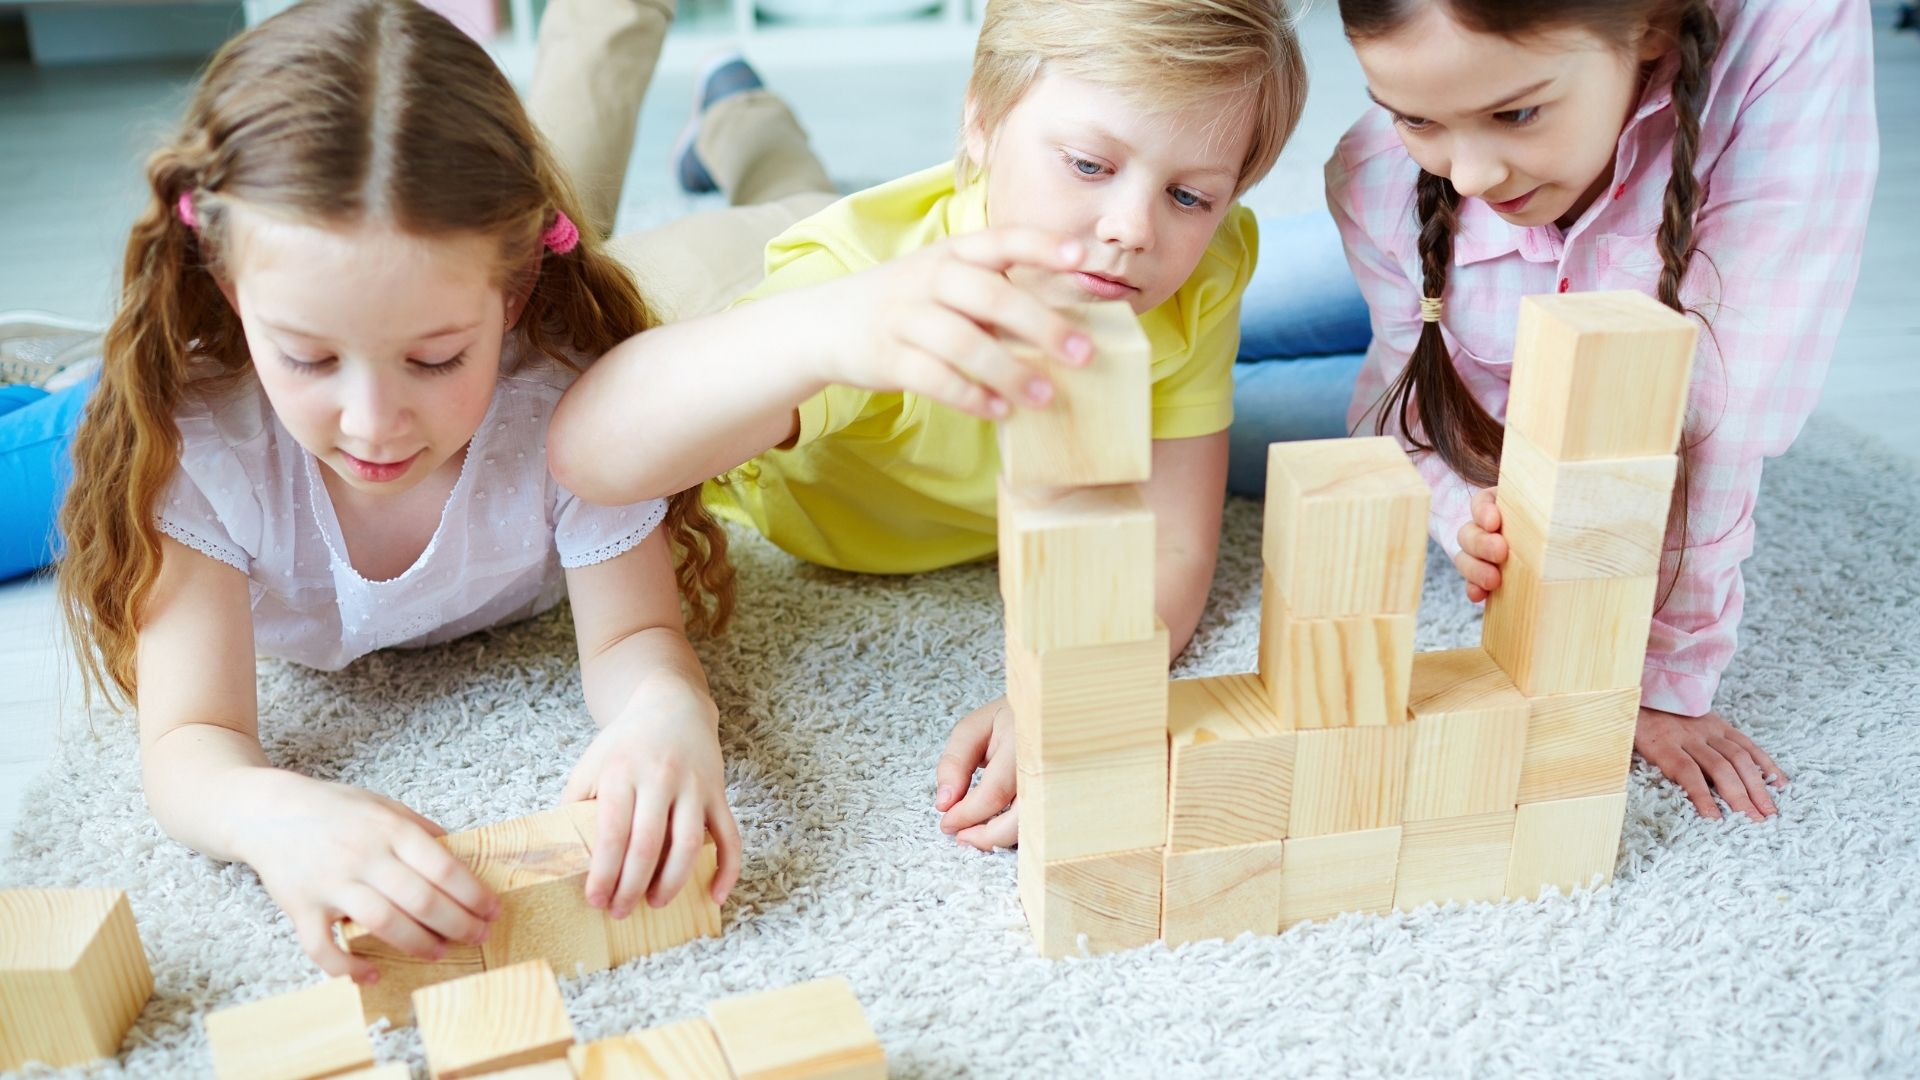 Toys to help promote language development in young children